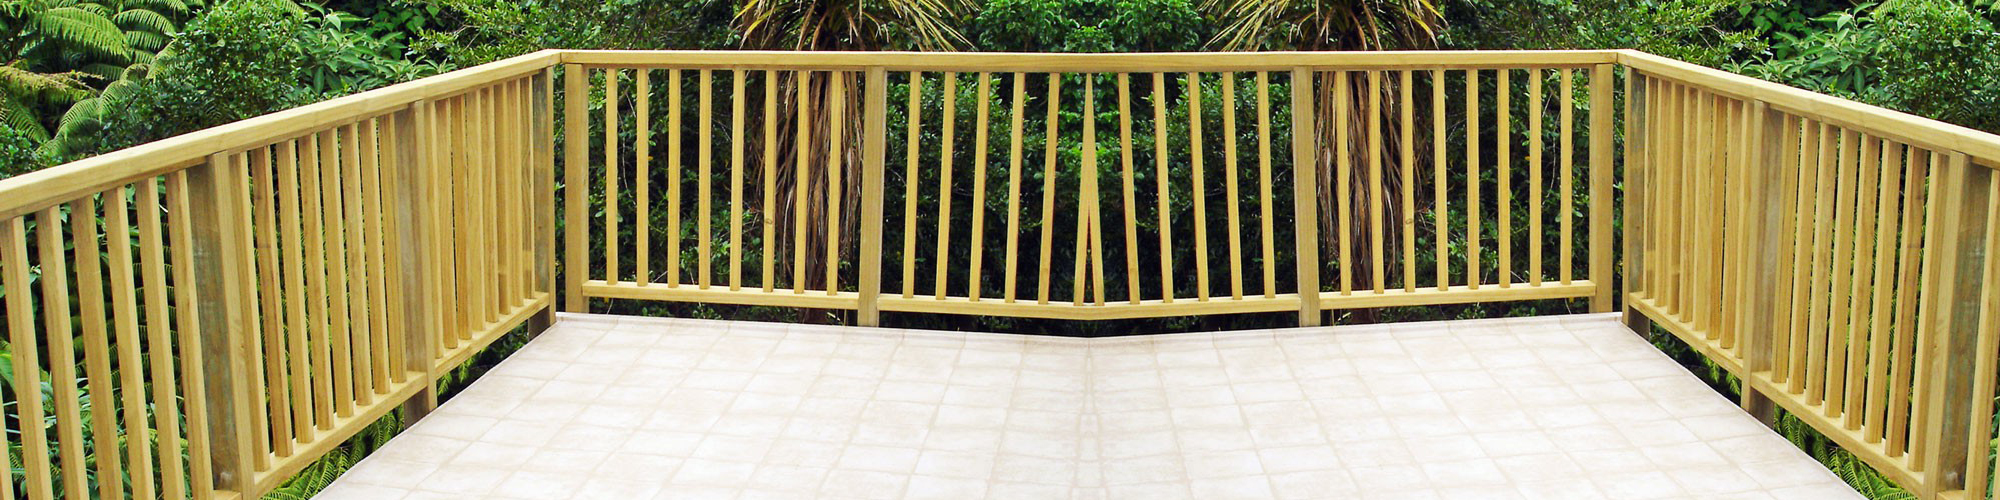 Timber Balustrades   Safeguard Your Deck With Wooden Rails   EzyDeck